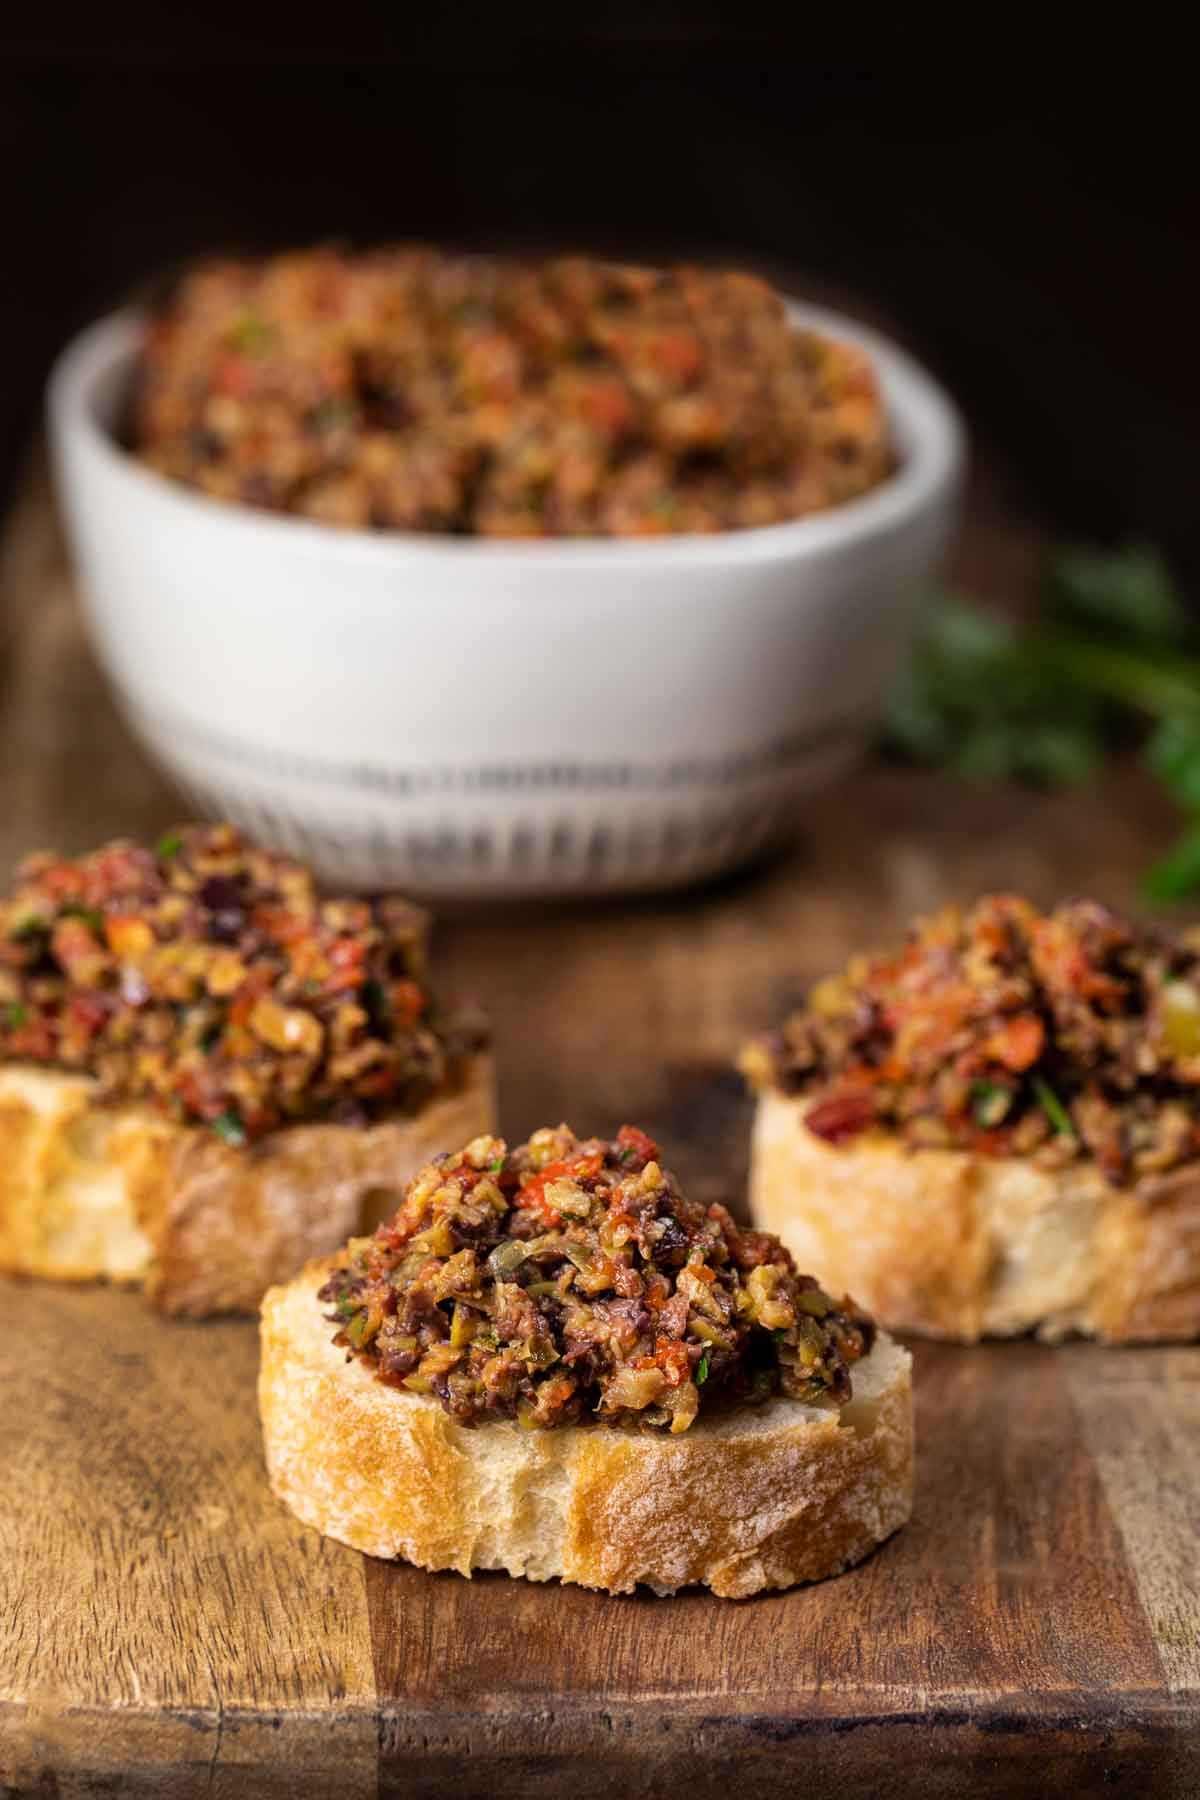 3 pieces of French bread with olive tapenade spread on top.